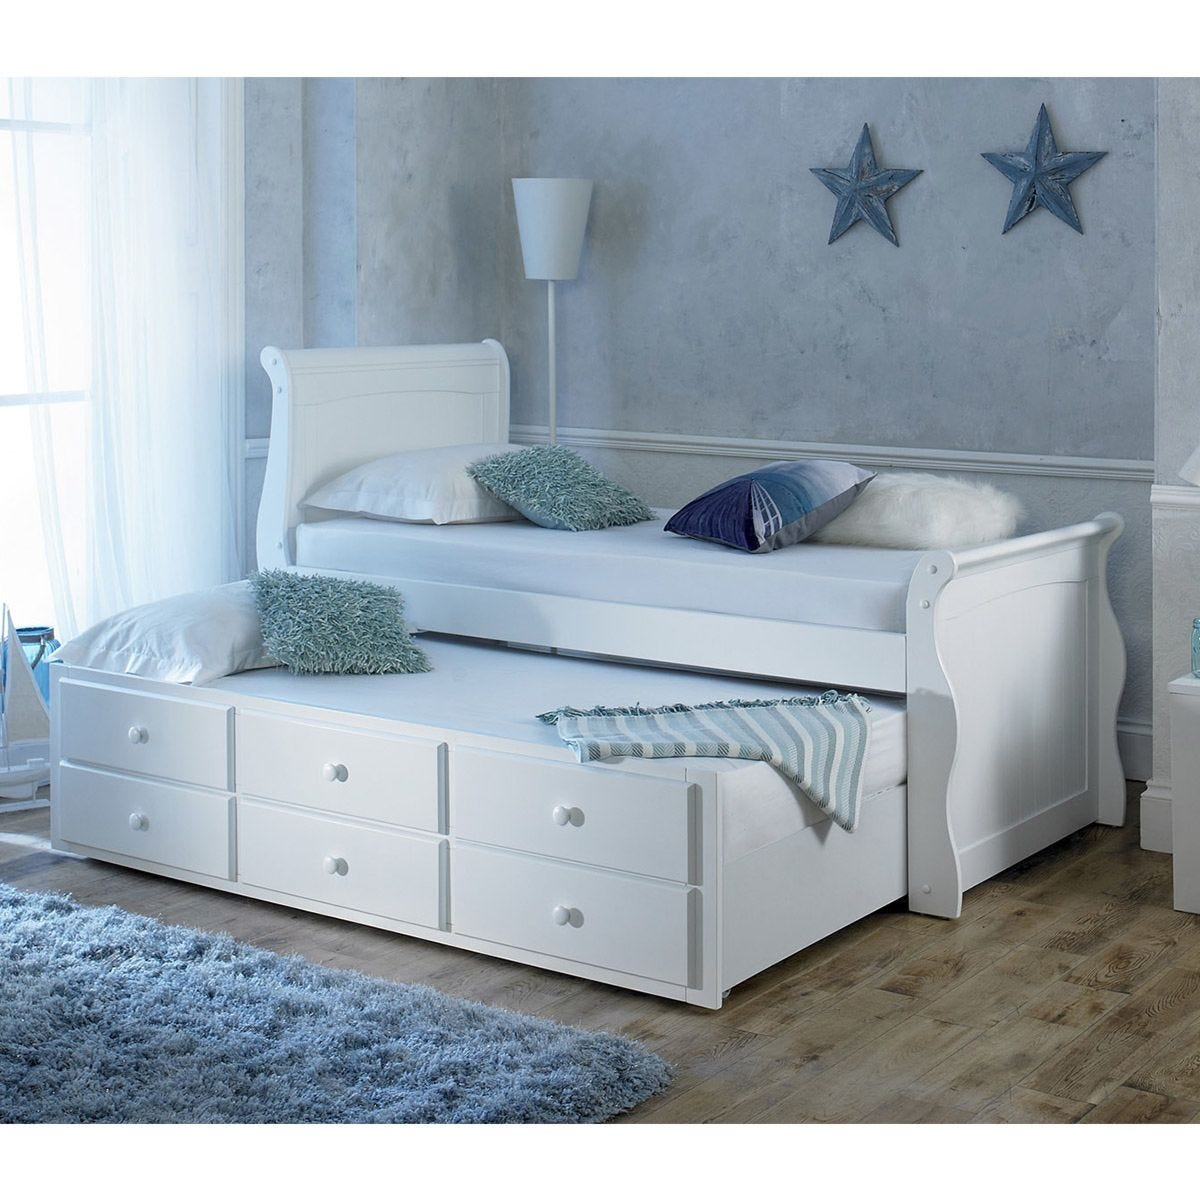 The Artisan Bed Company Captain Bed - White